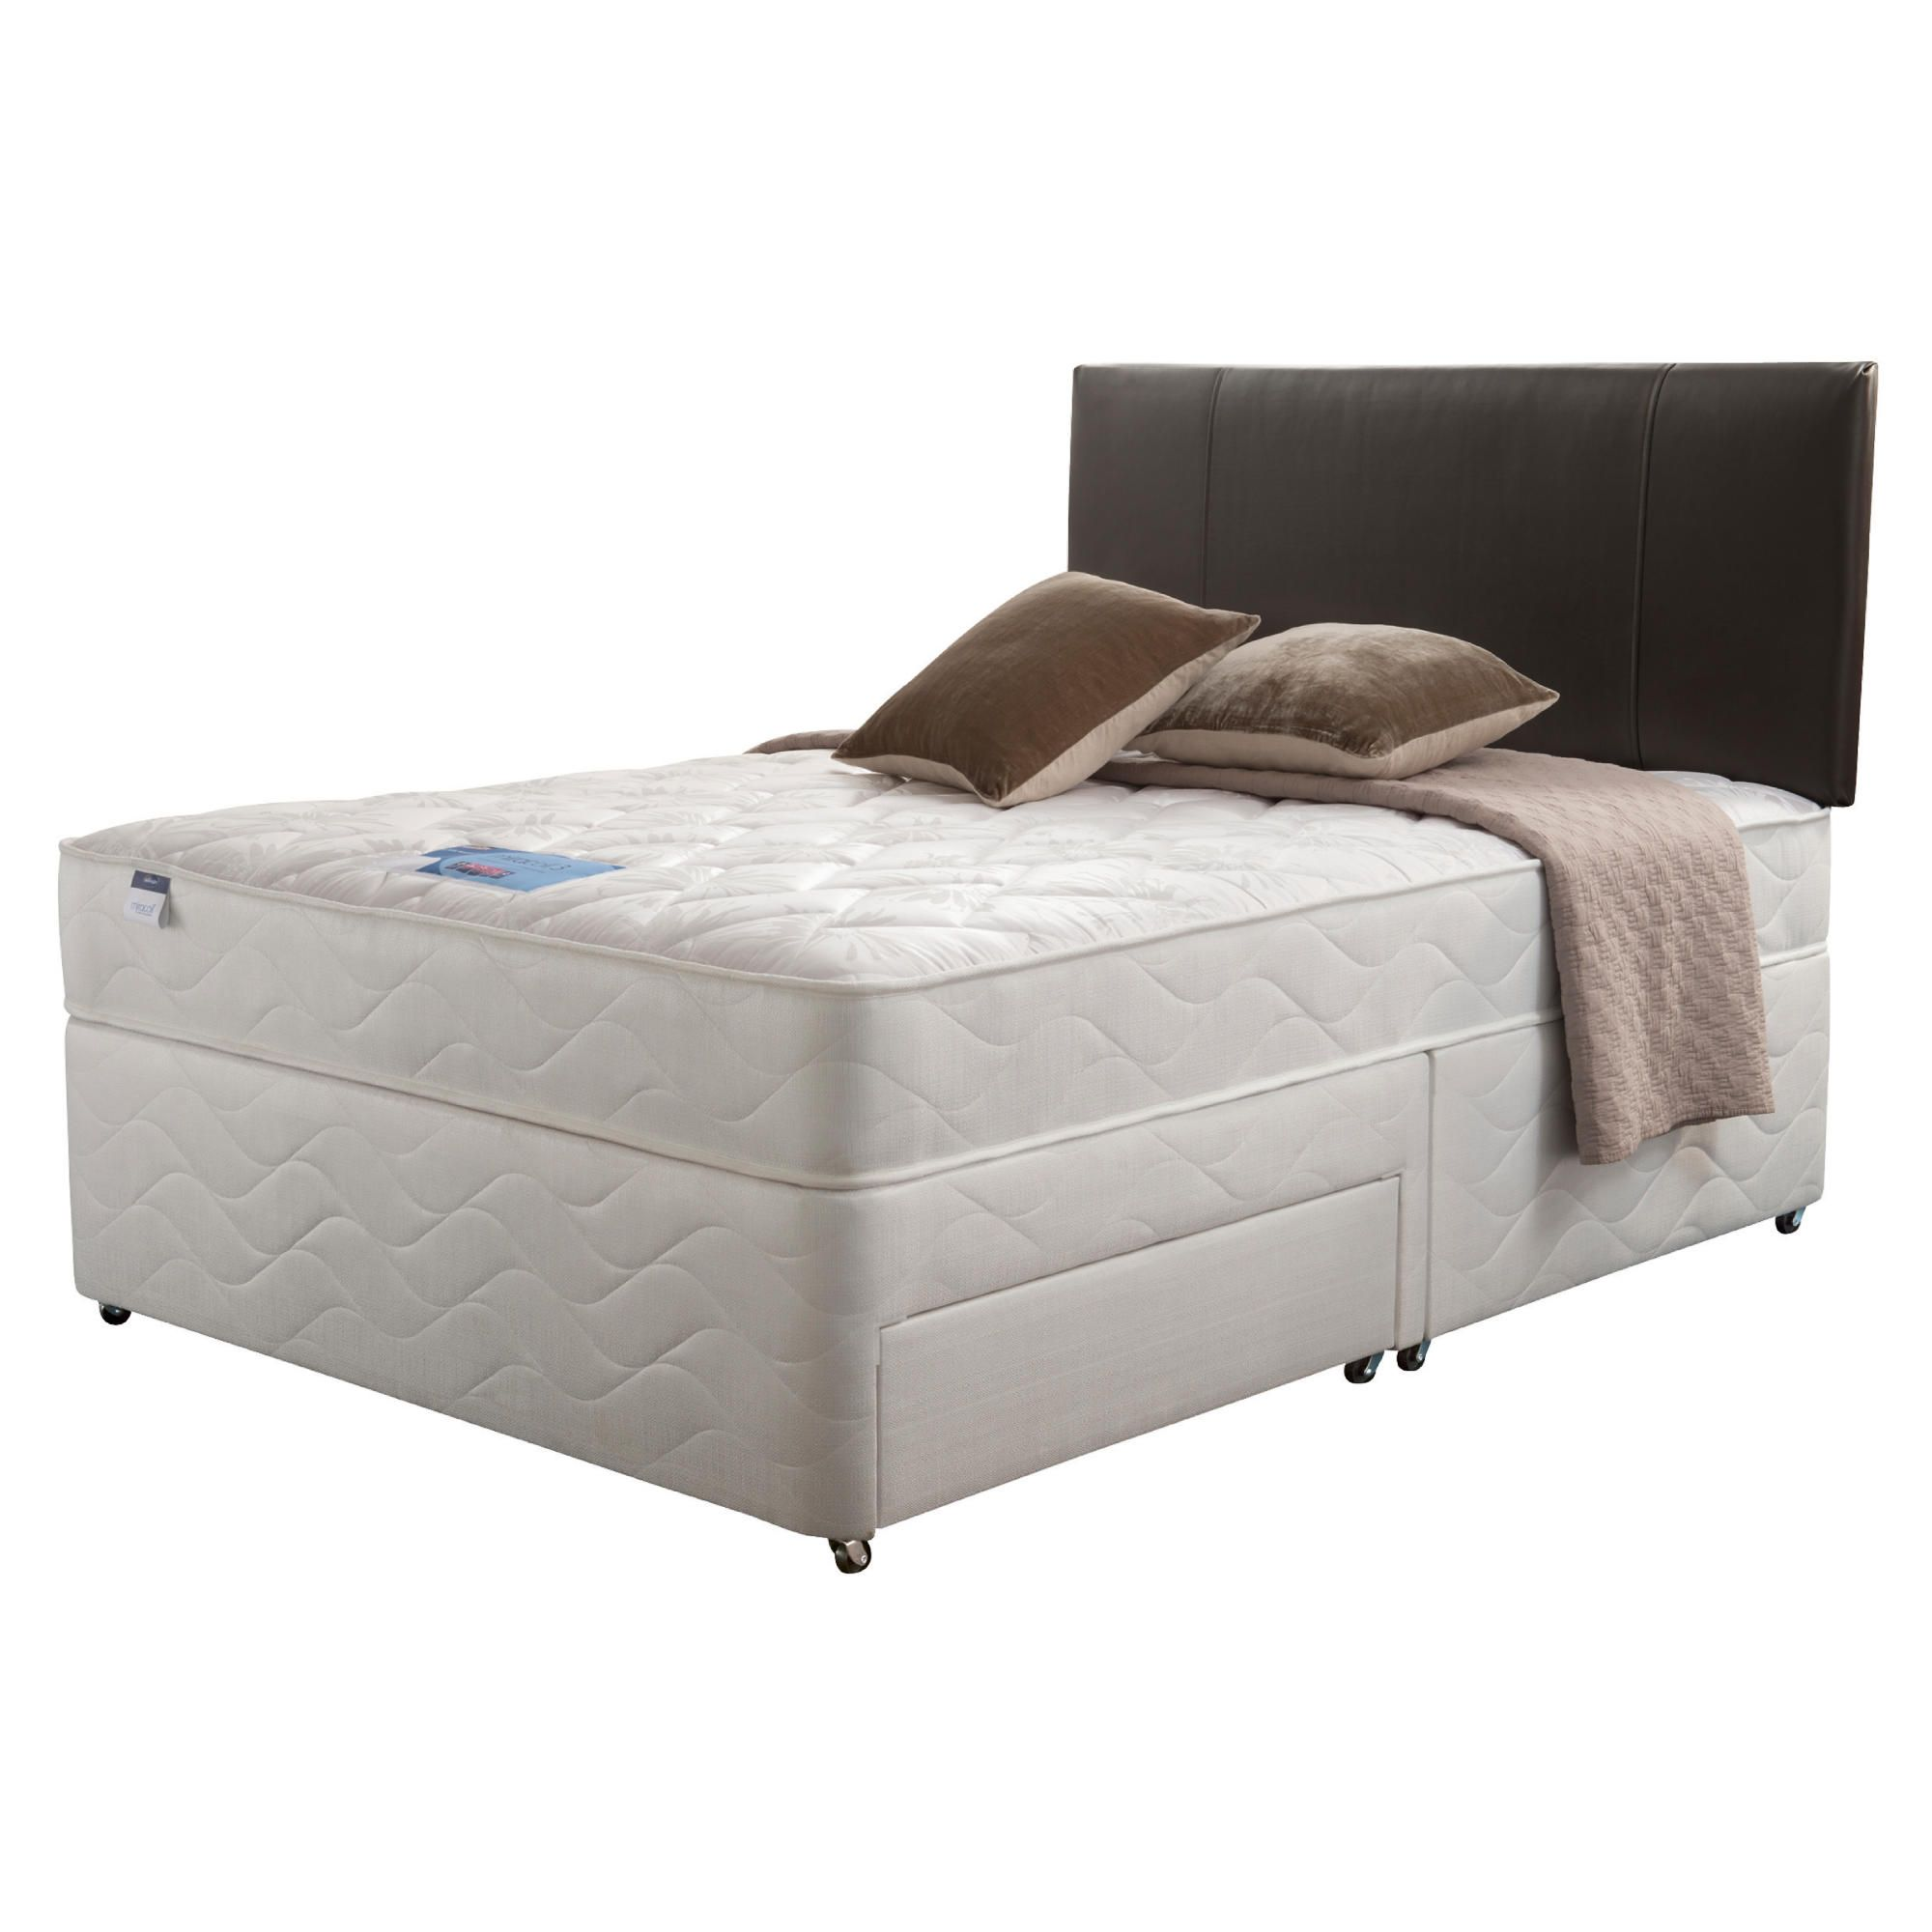 Silentnight Miracoil Kingston King Non Storage Divan set at Tescos Direct